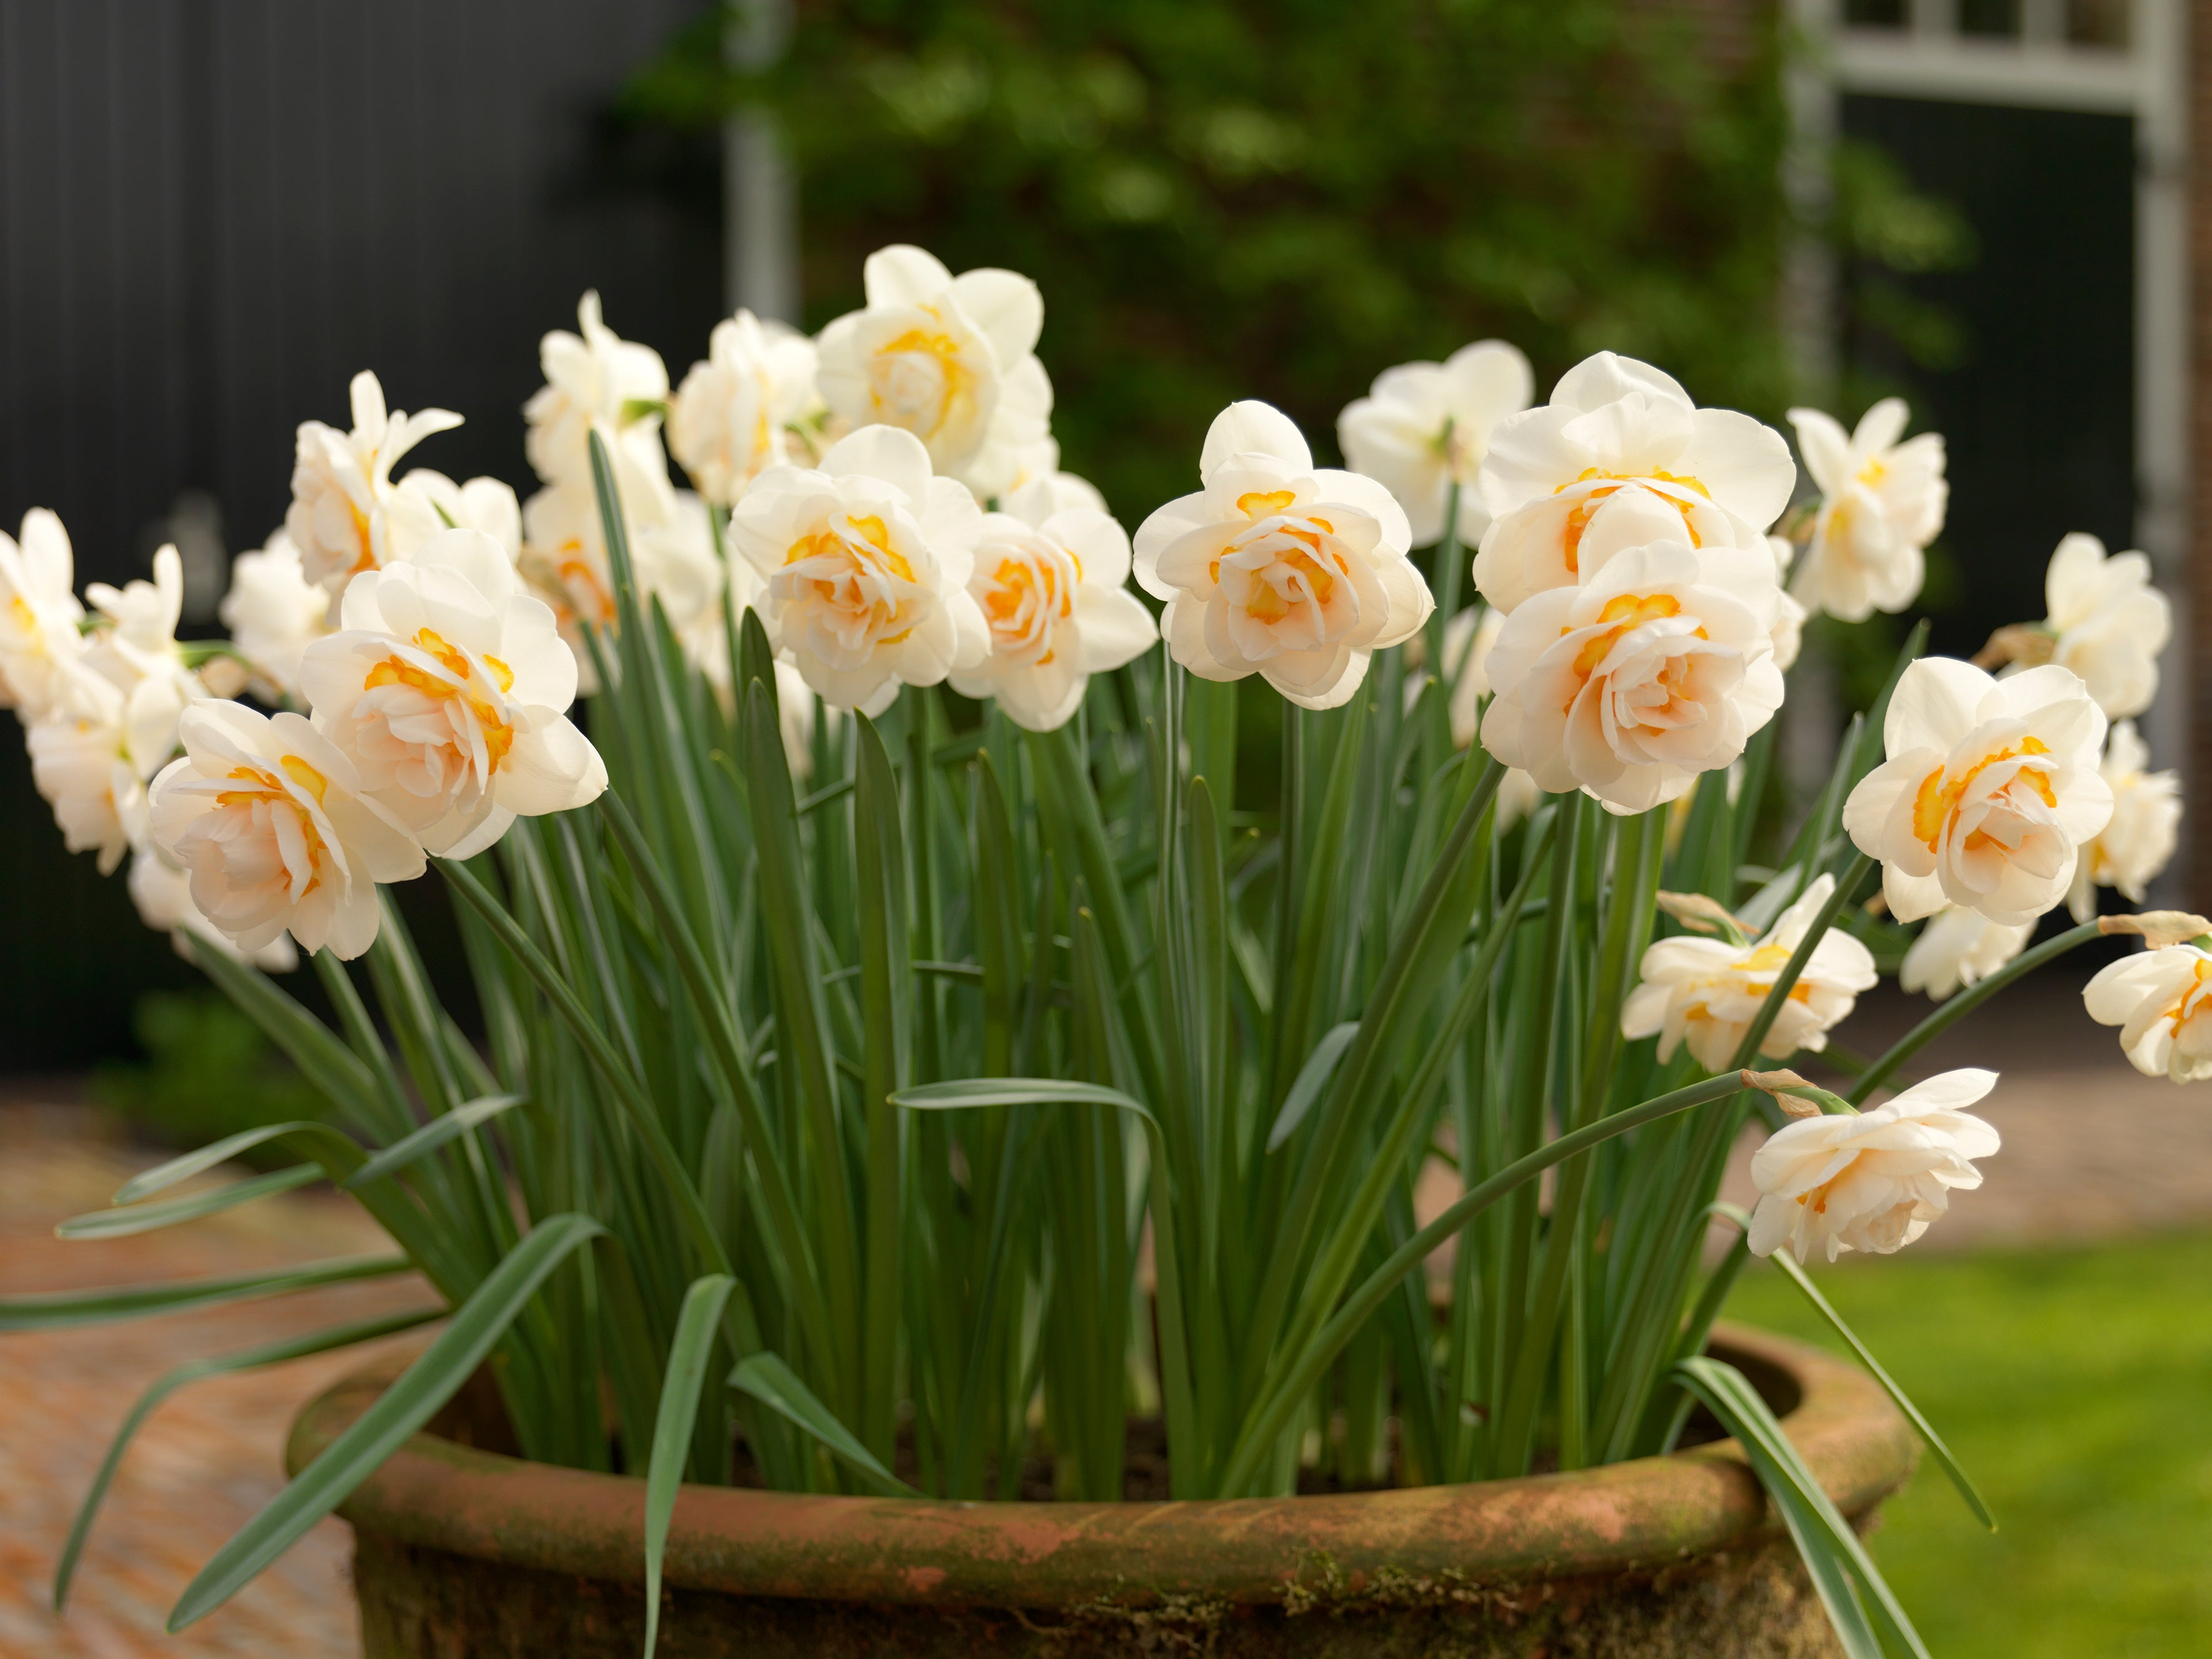 Growing Guides: How to Grow Daffodil and Narcissus Bulbs